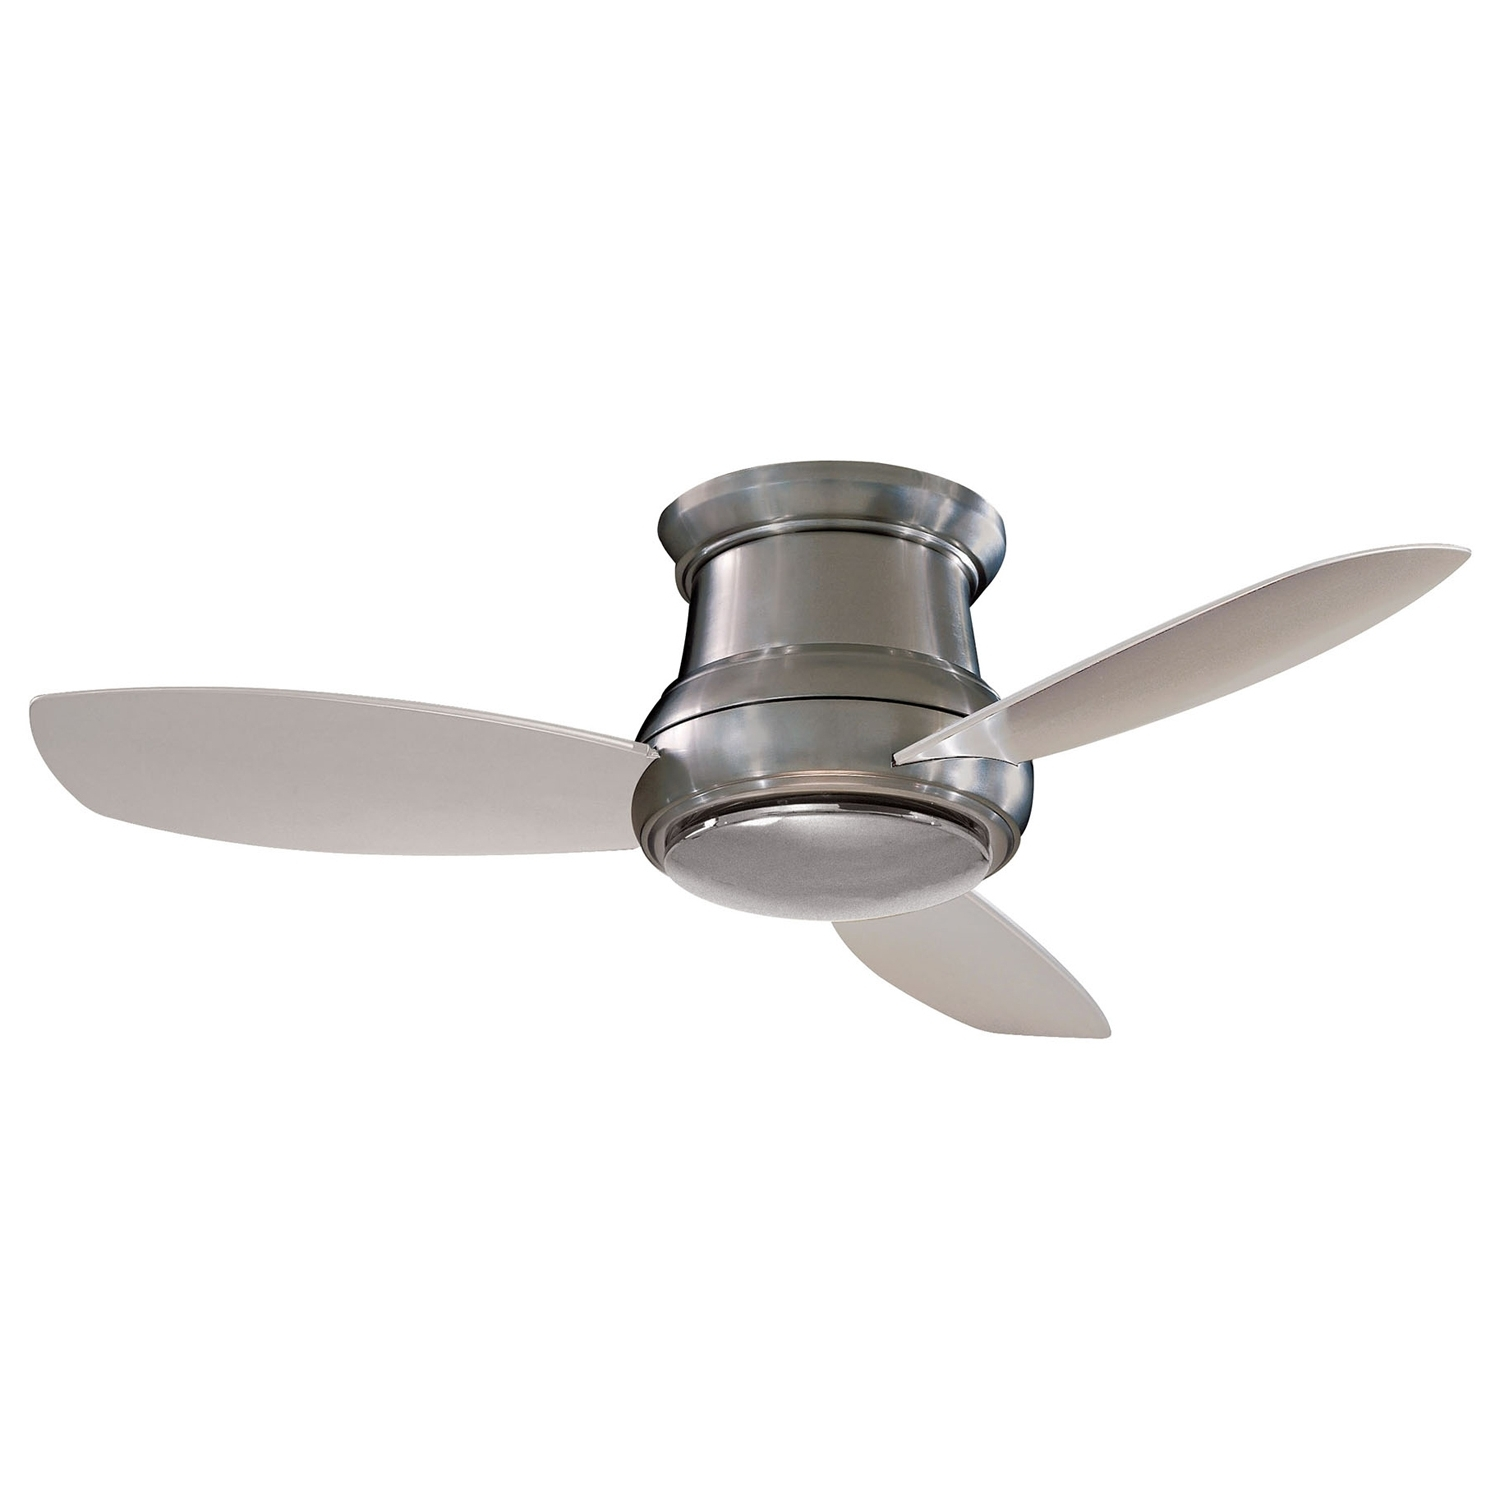 36 Inch Outdoor Ceiling Fans For Famous Ceiling Fan: Remarkable 36 Outdoor Ceiling Fan For Home 36 Inch Fans (Gallery 3 of 20)